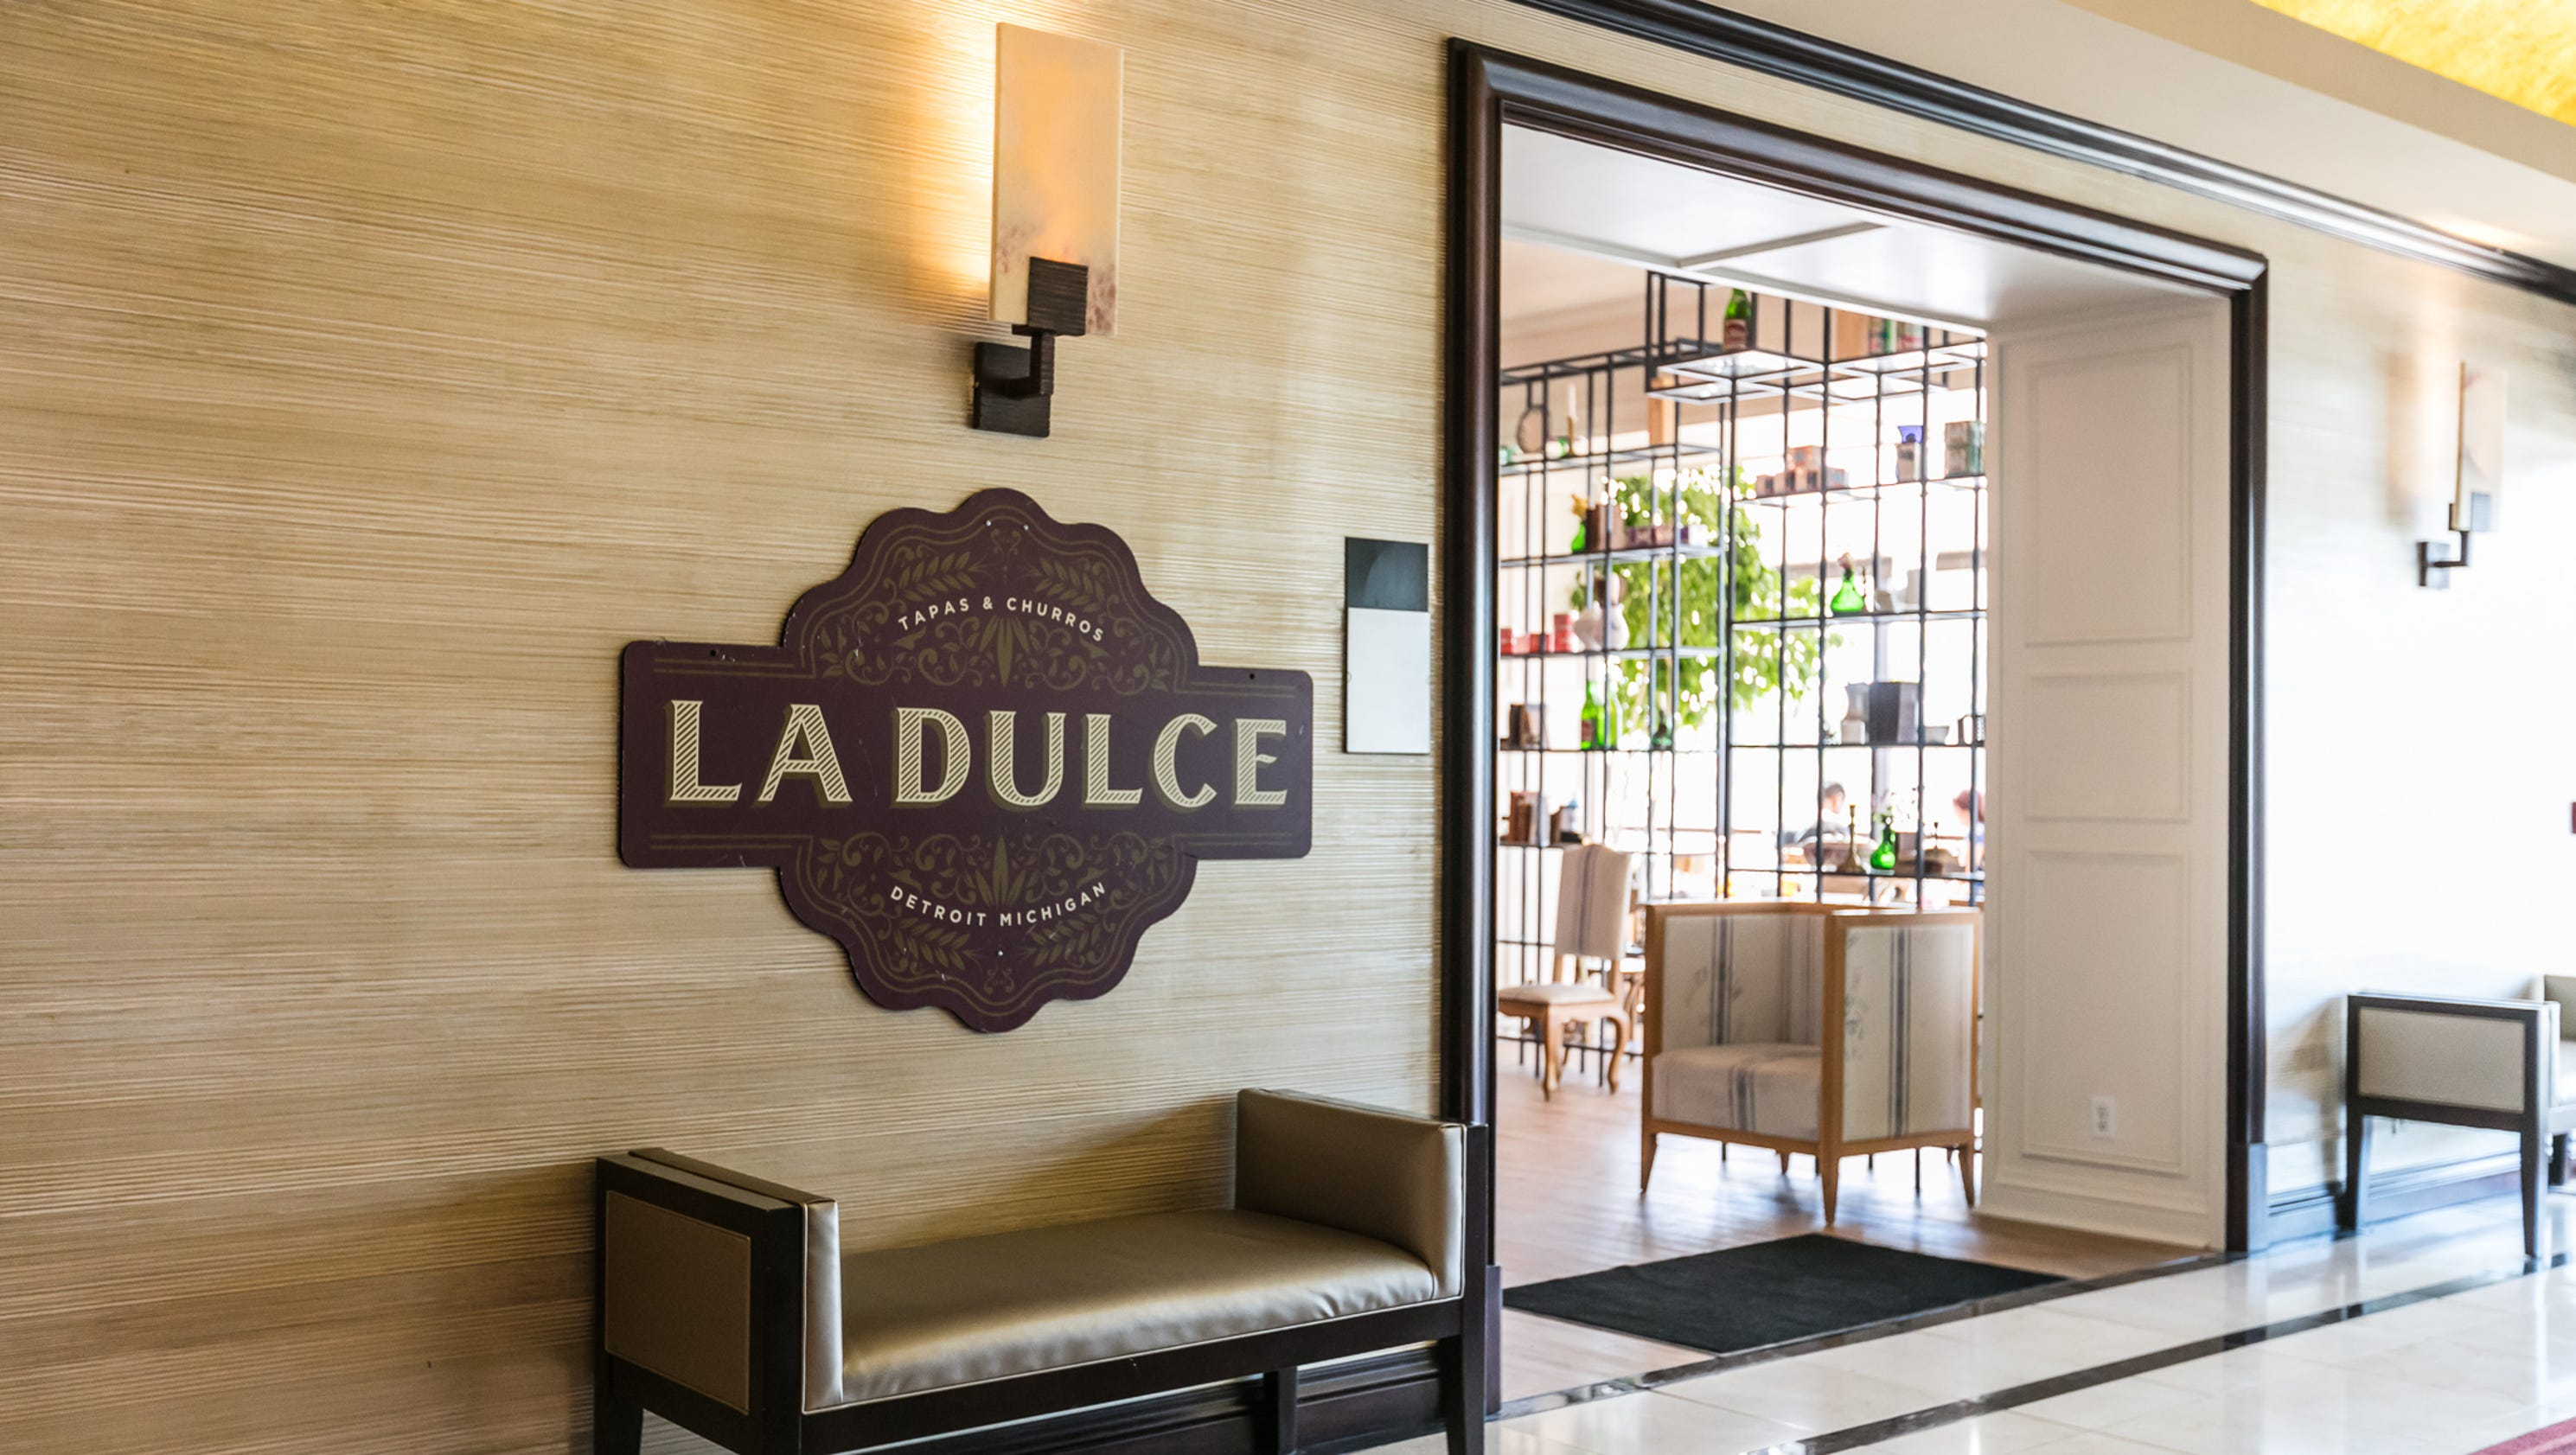 Crowne Plaza Detroit La Dulce Reopens At New Location In Crowne Plaza Detroit